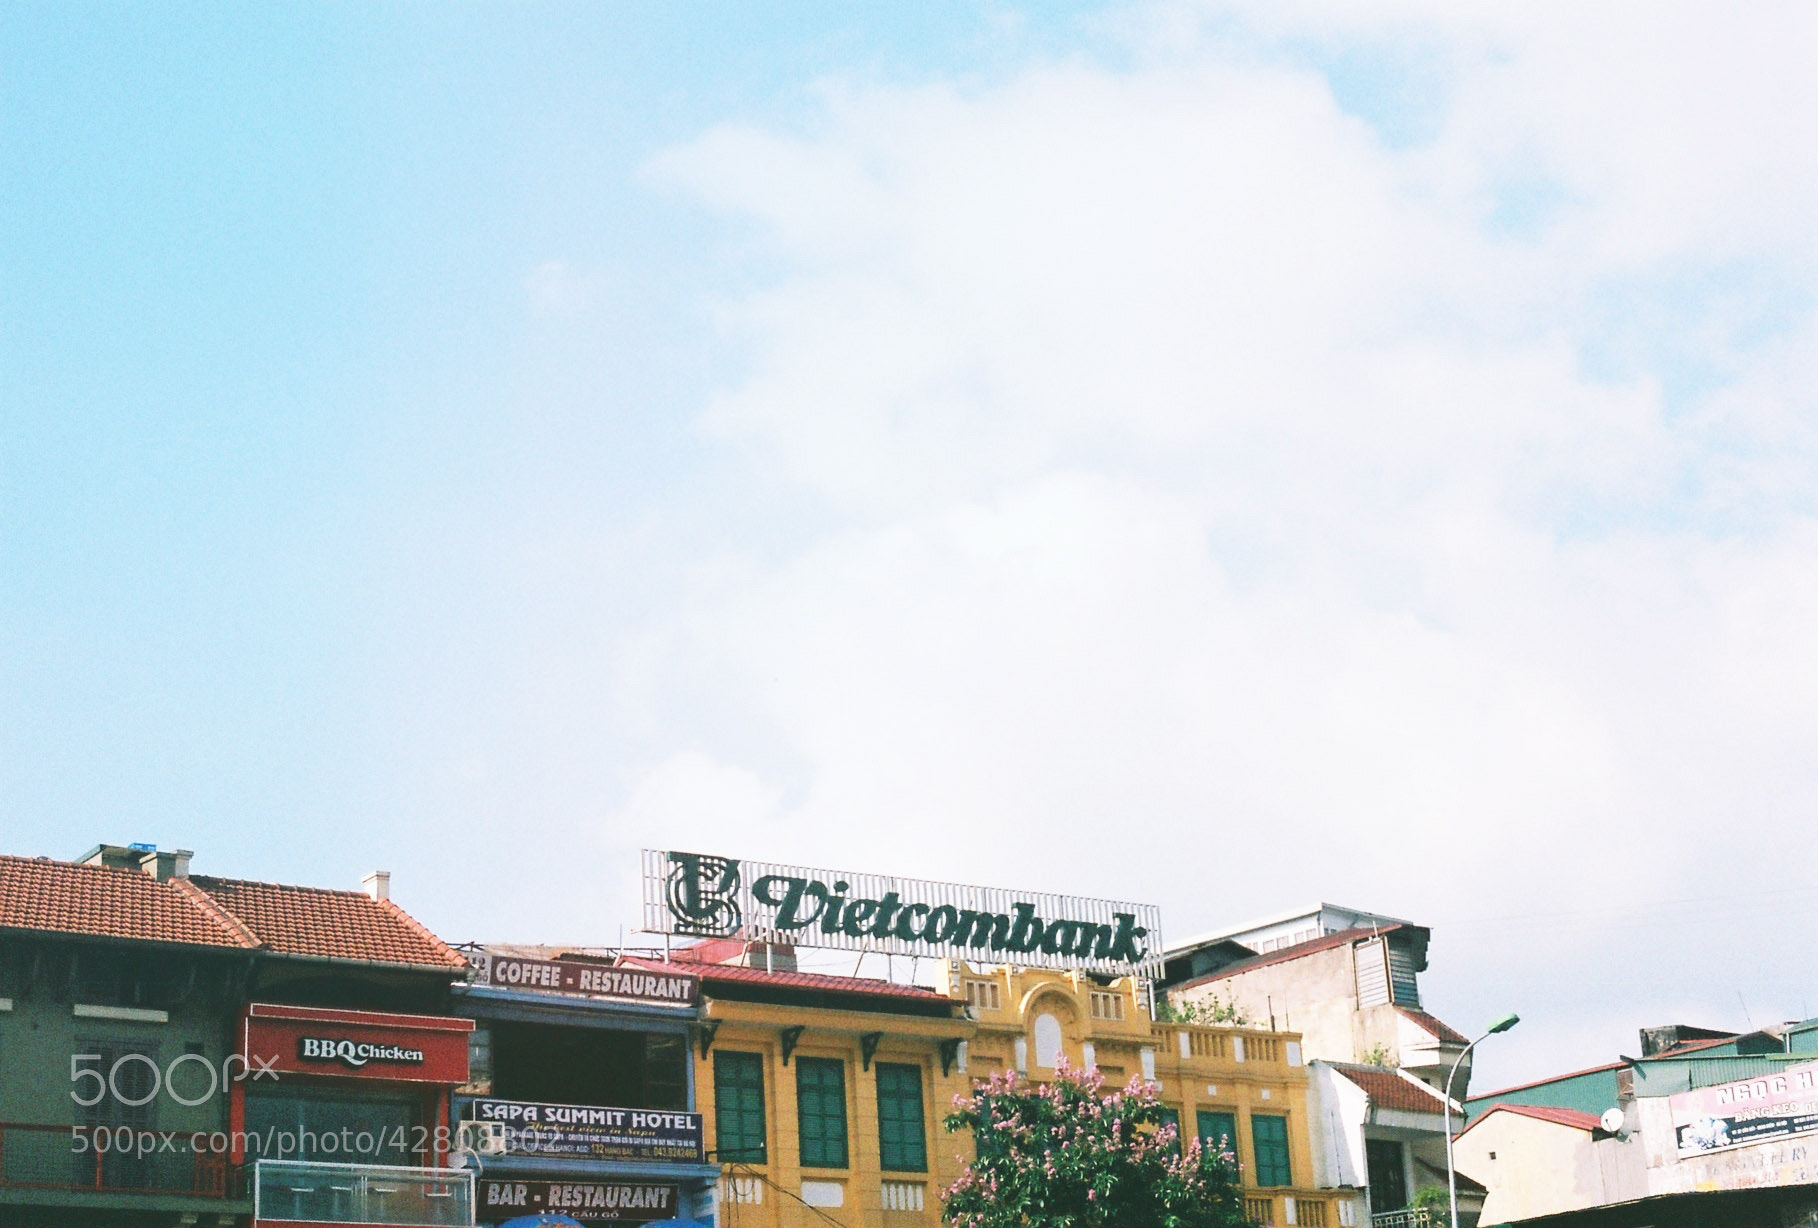 Photograph Vietcombank by Addie Chong on 500px